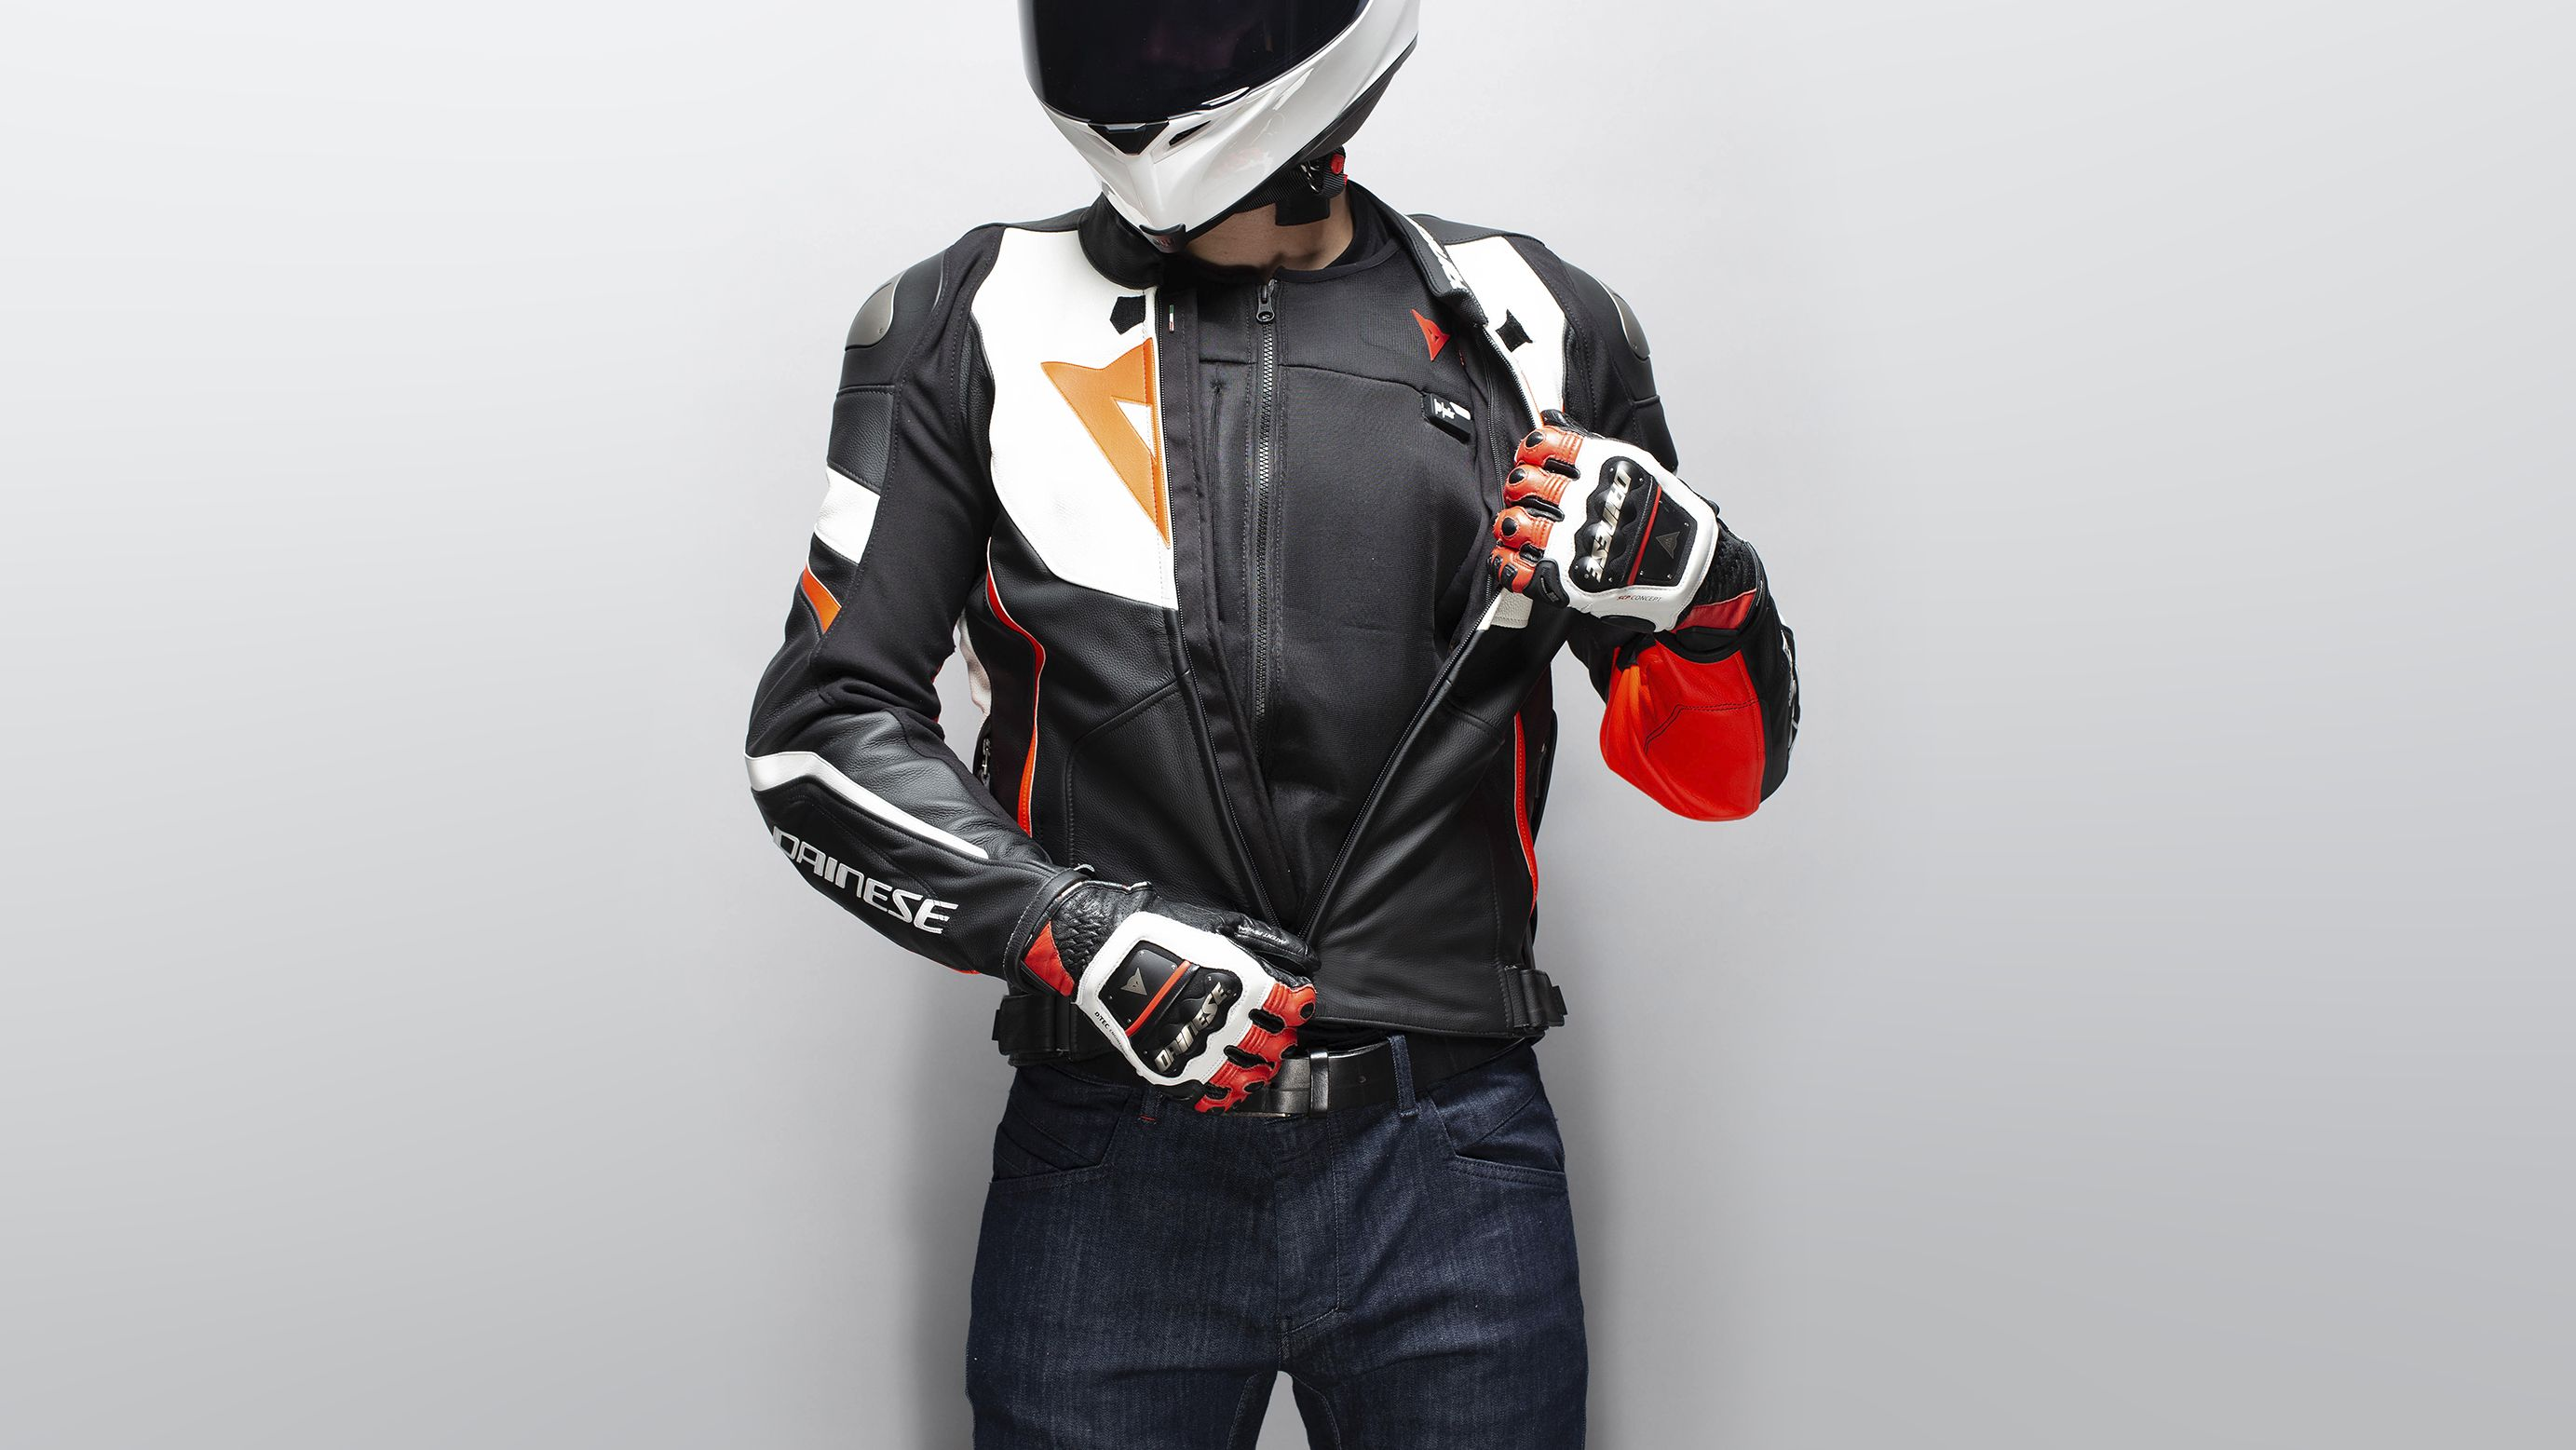 The Dainese Smart Jacket Is an Airbag You Can Wear Under Your Favorite Riding Clothes